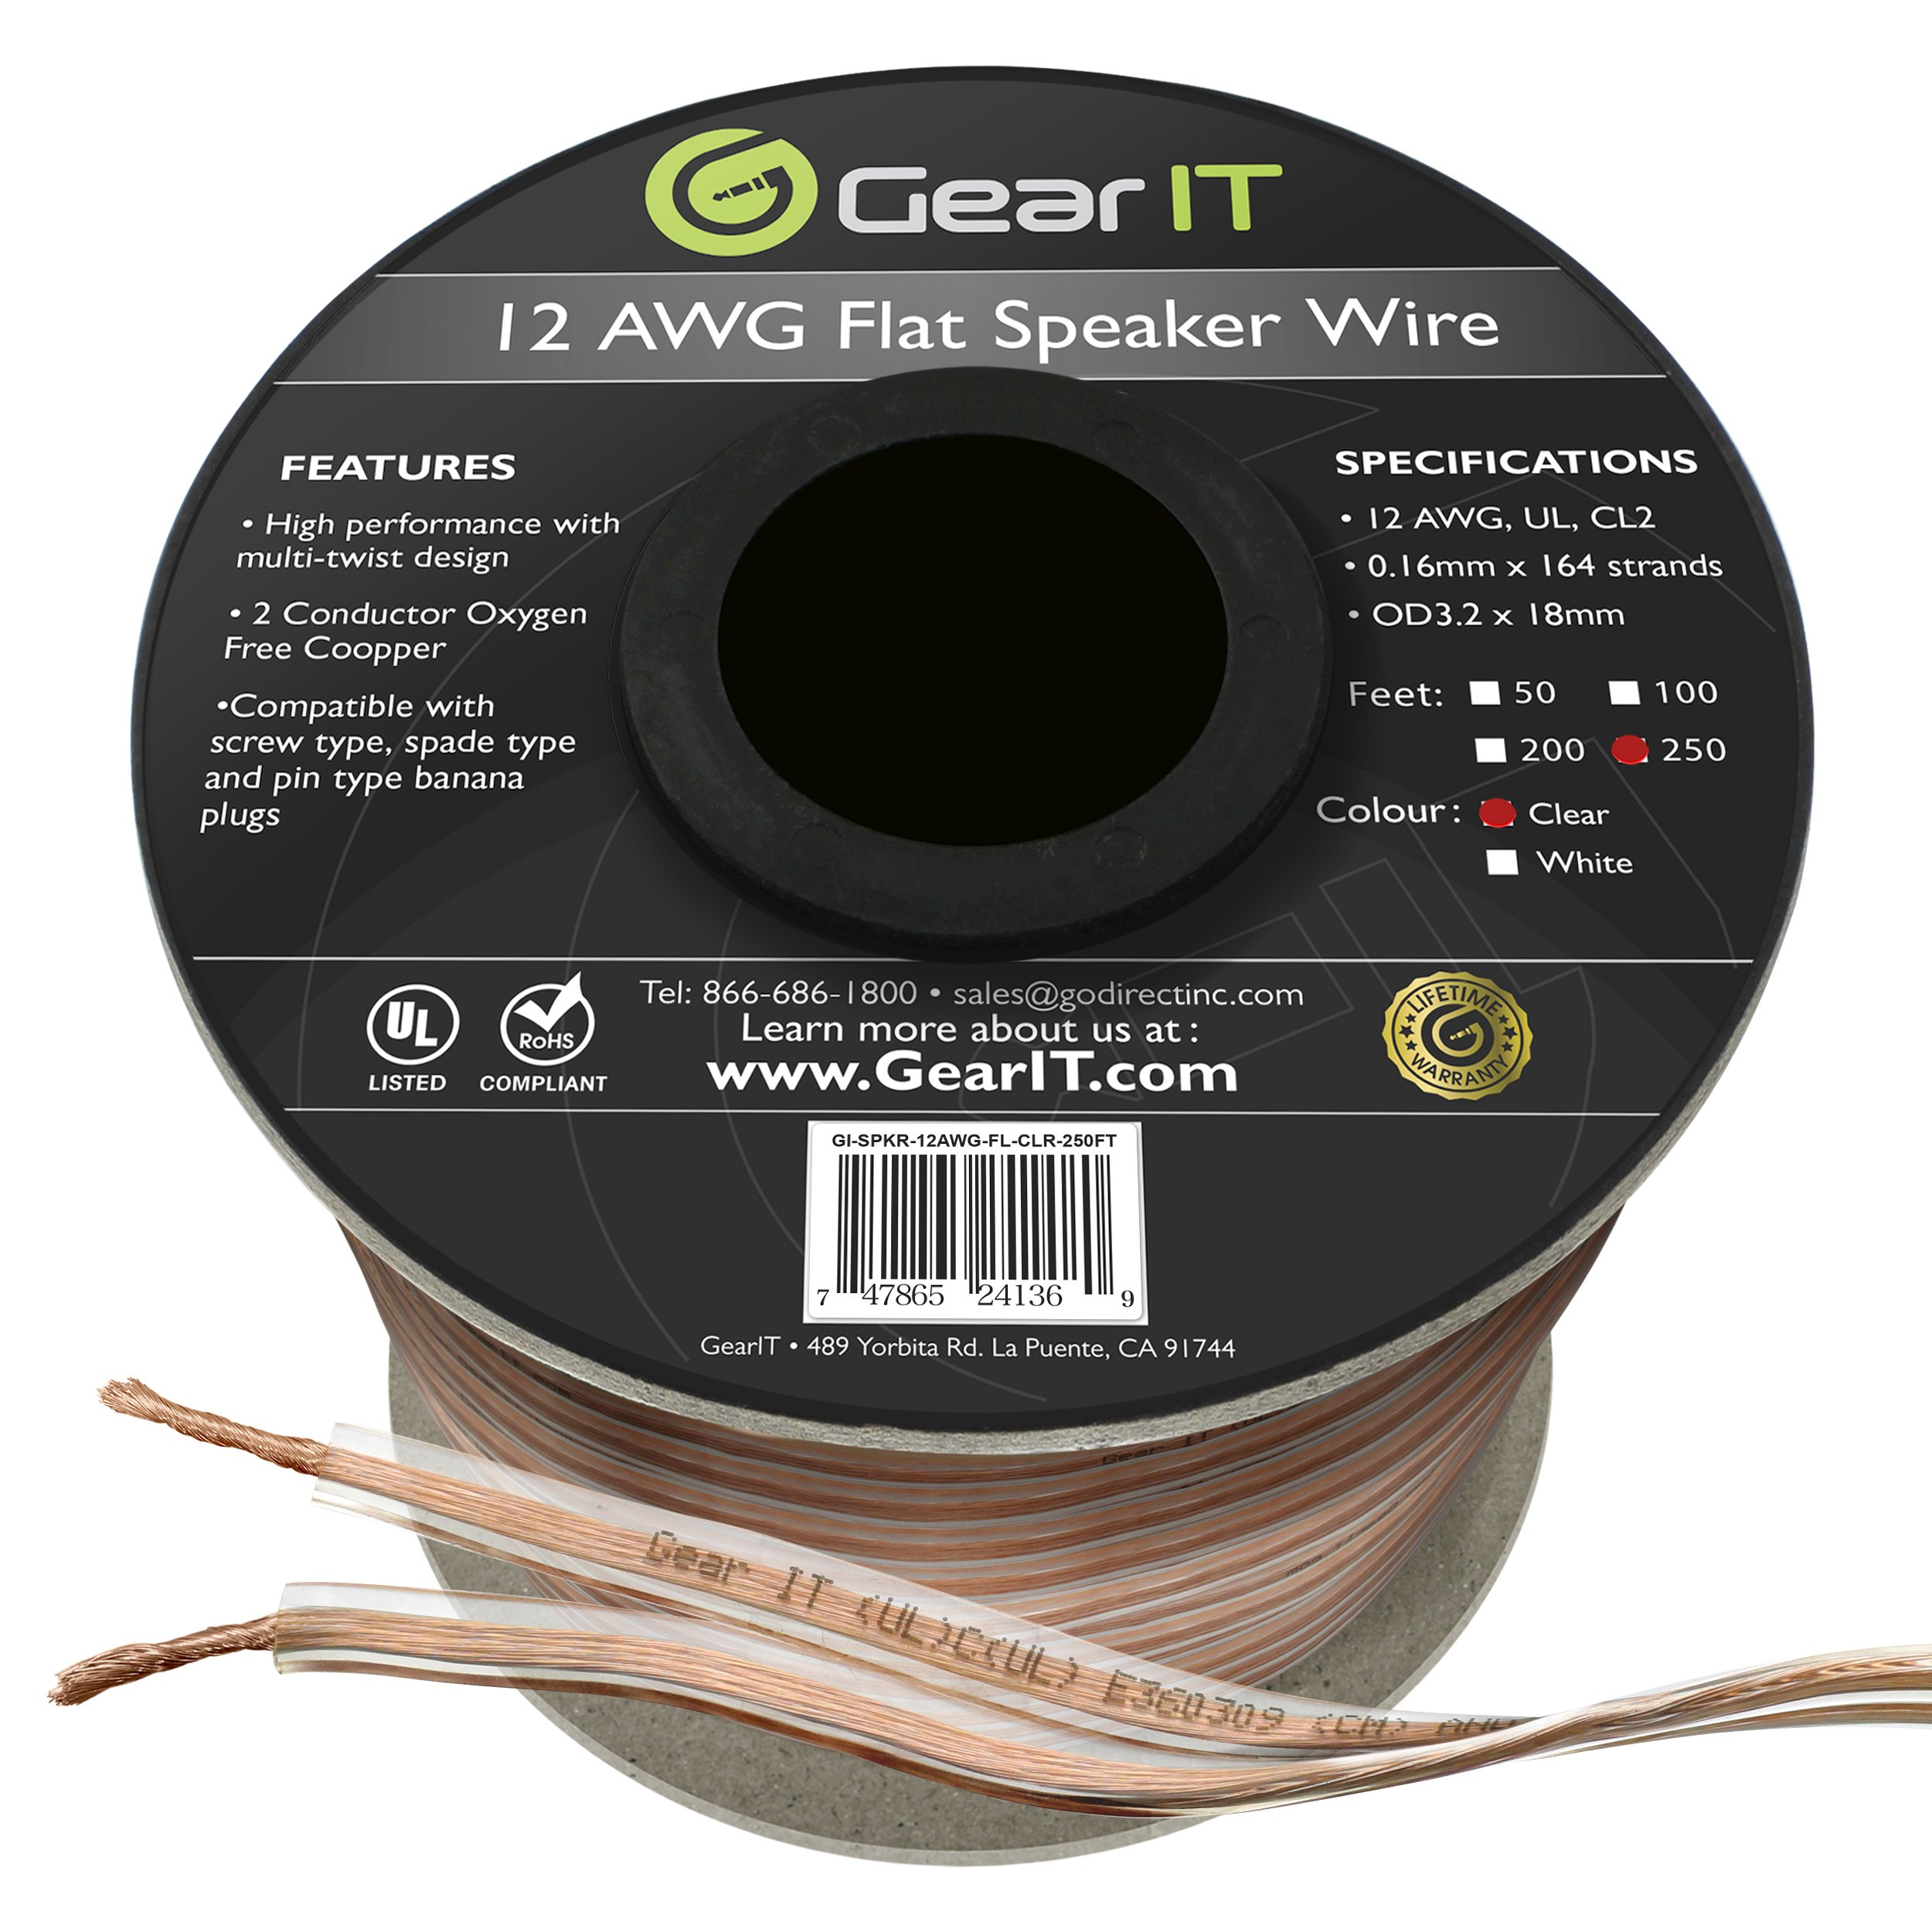 GearIT Elite Series 12AWG Flat Speaker Wire (250 Feet/76 Meters) - Oxygen Free Copper (OFC) CL2 Rated In-Wall Installation for Home Theater, Car Audio, and Outdoor Use, Clear by GearIT